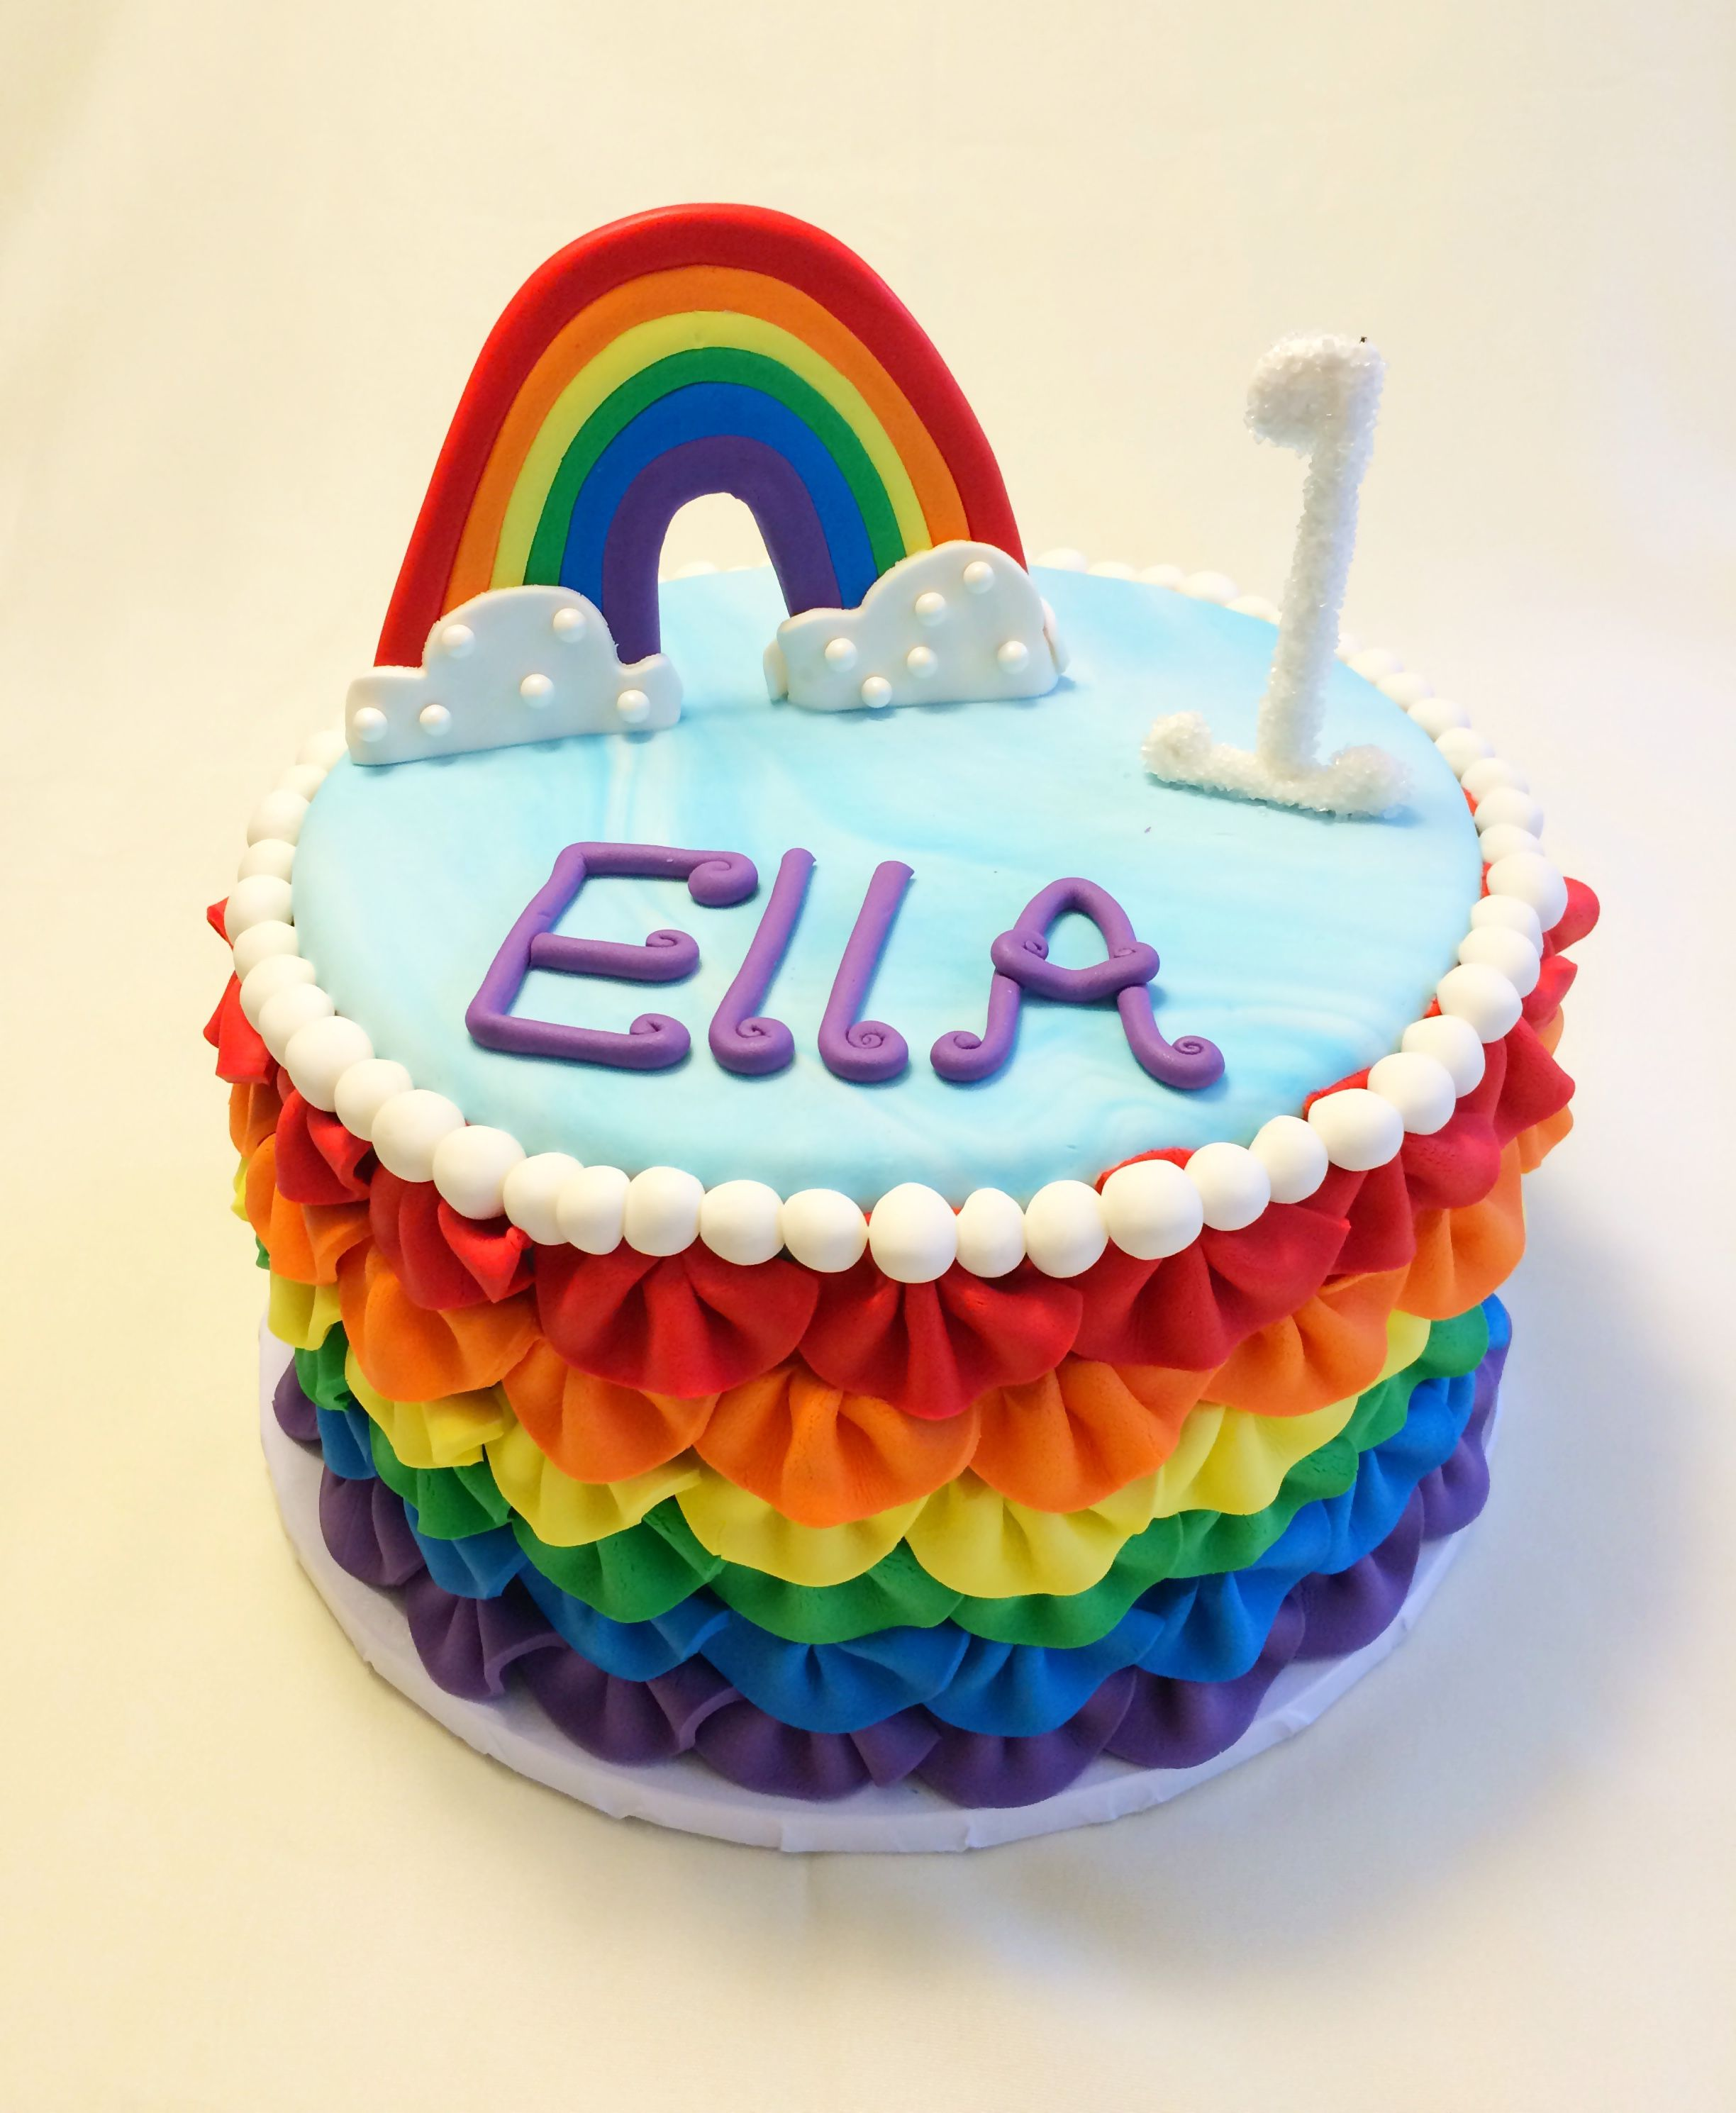 Rainbow first birthday cake httpinstagramcompvuVAoRSX2omodal